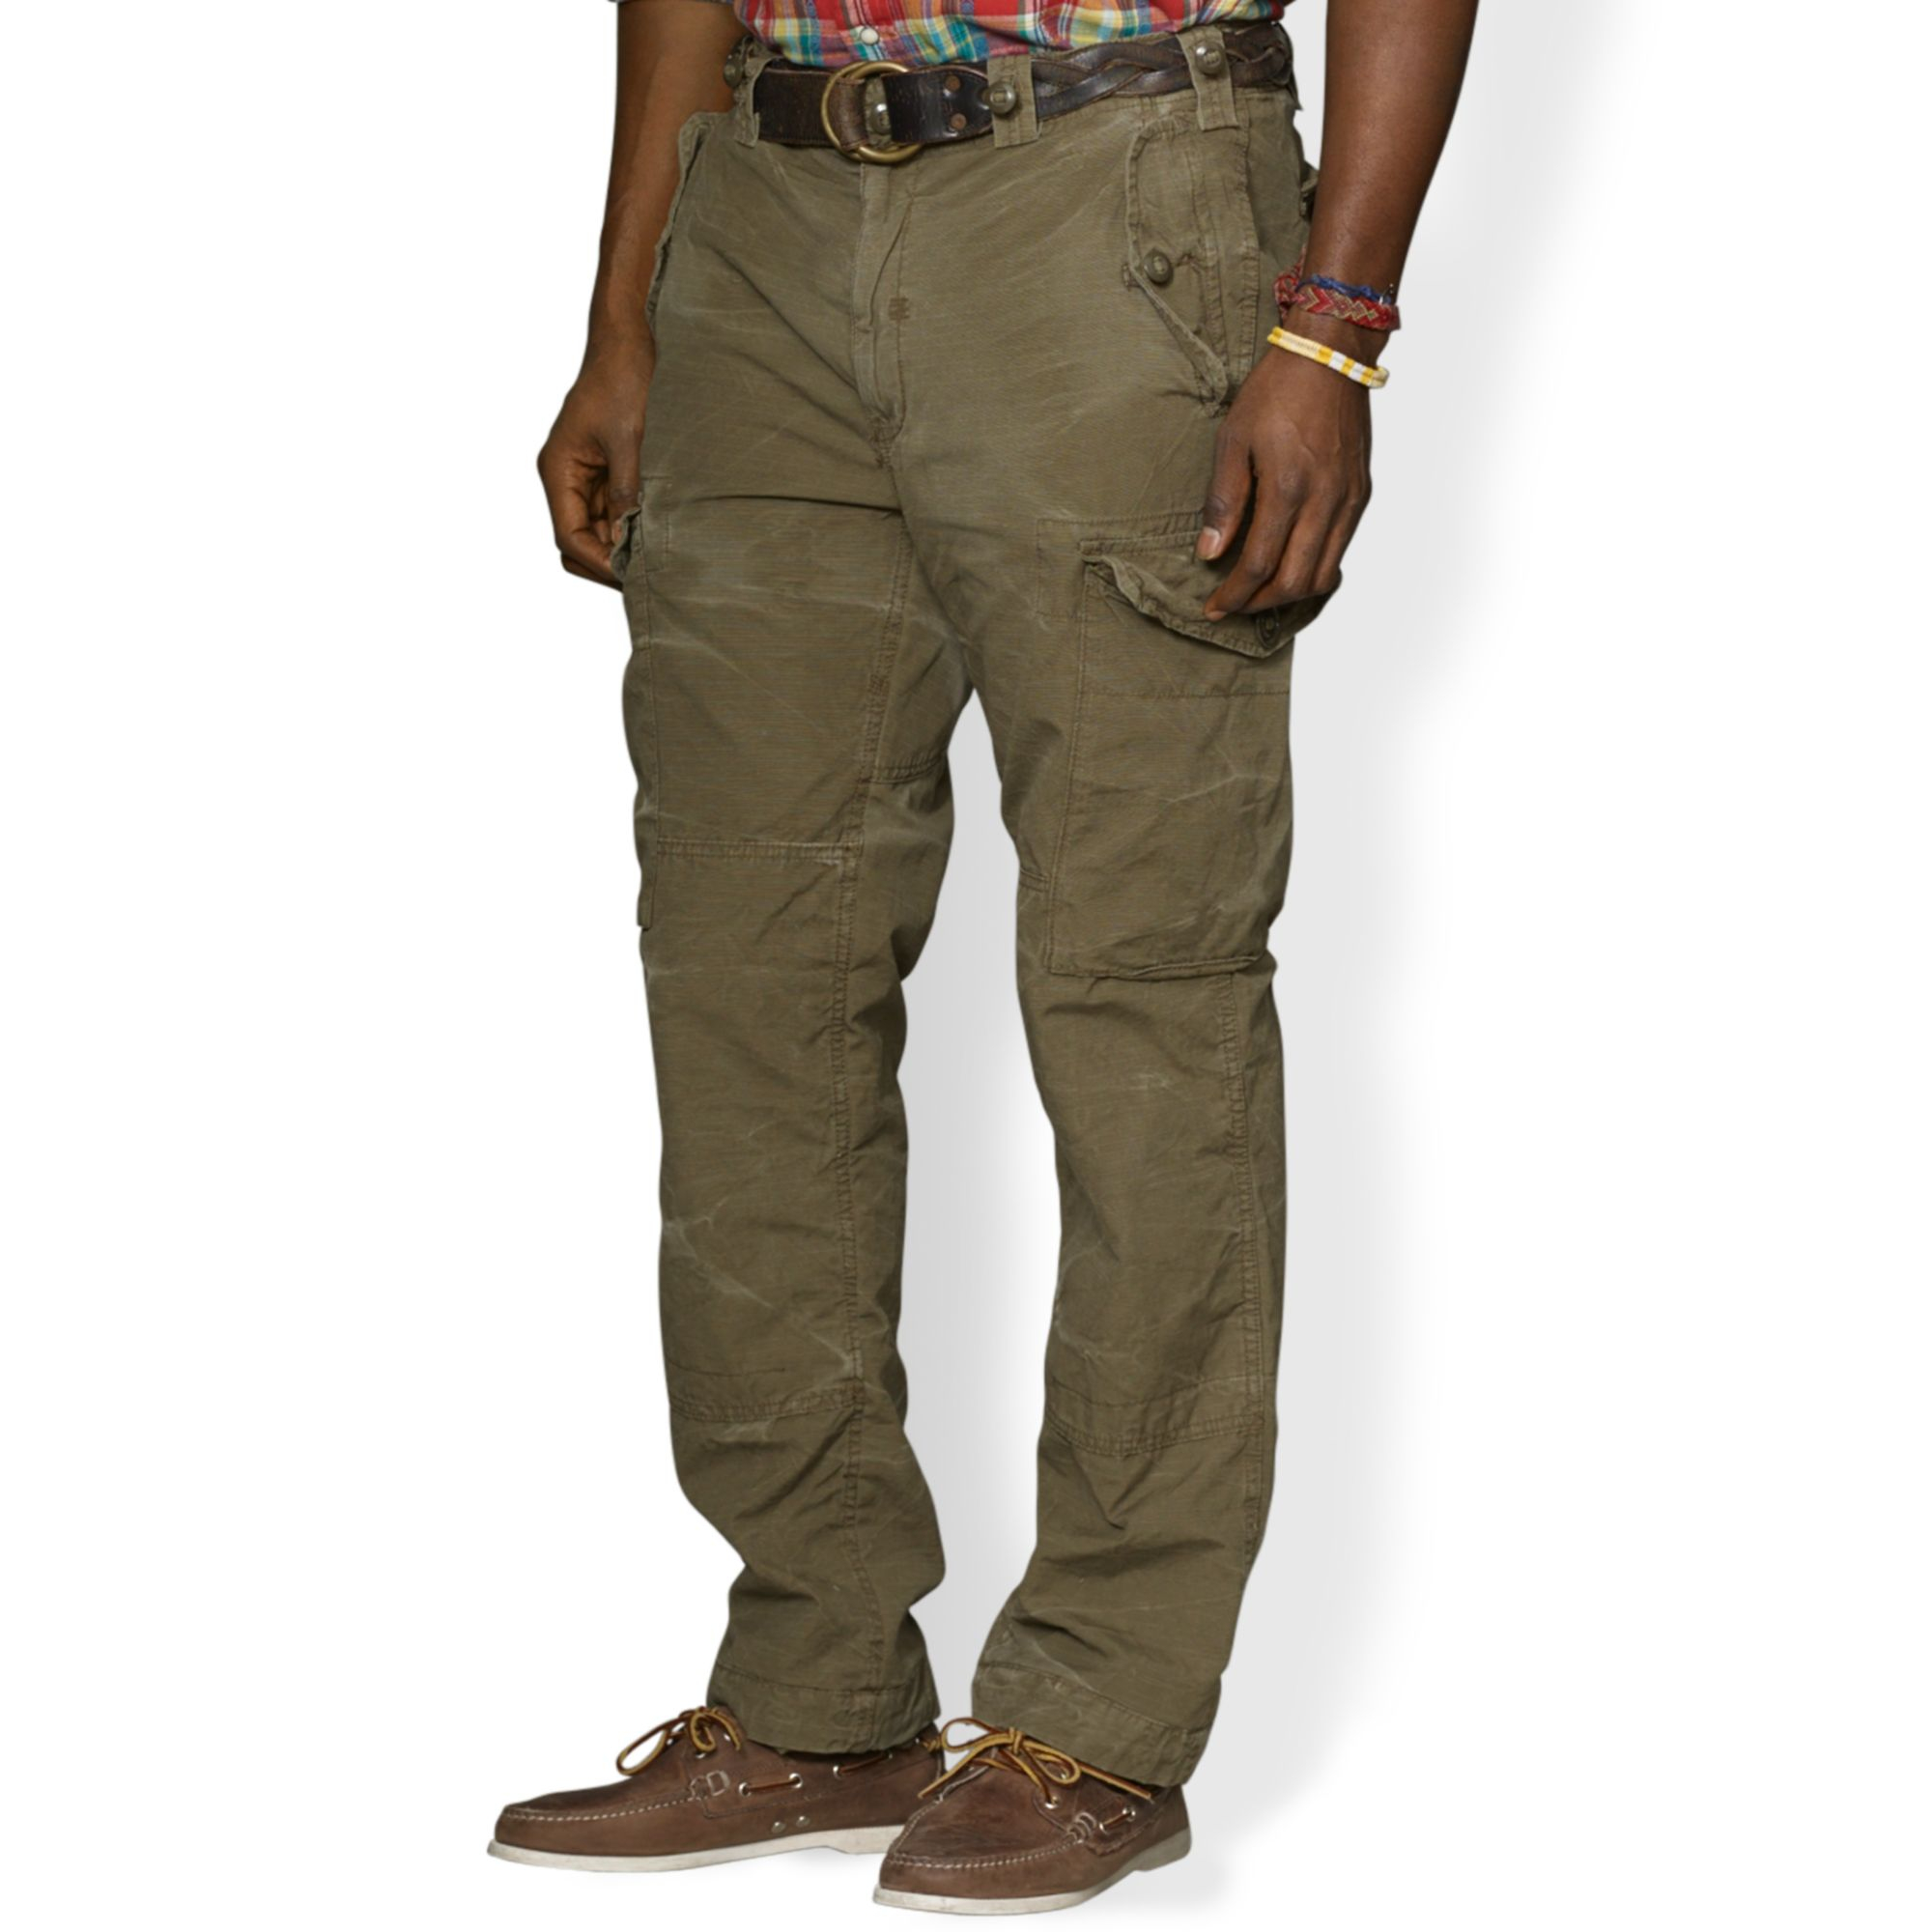 3916a7fde4 Ralph Lauren Polo Big and Tall Classicfit Canadian Ripstop Cargo ...